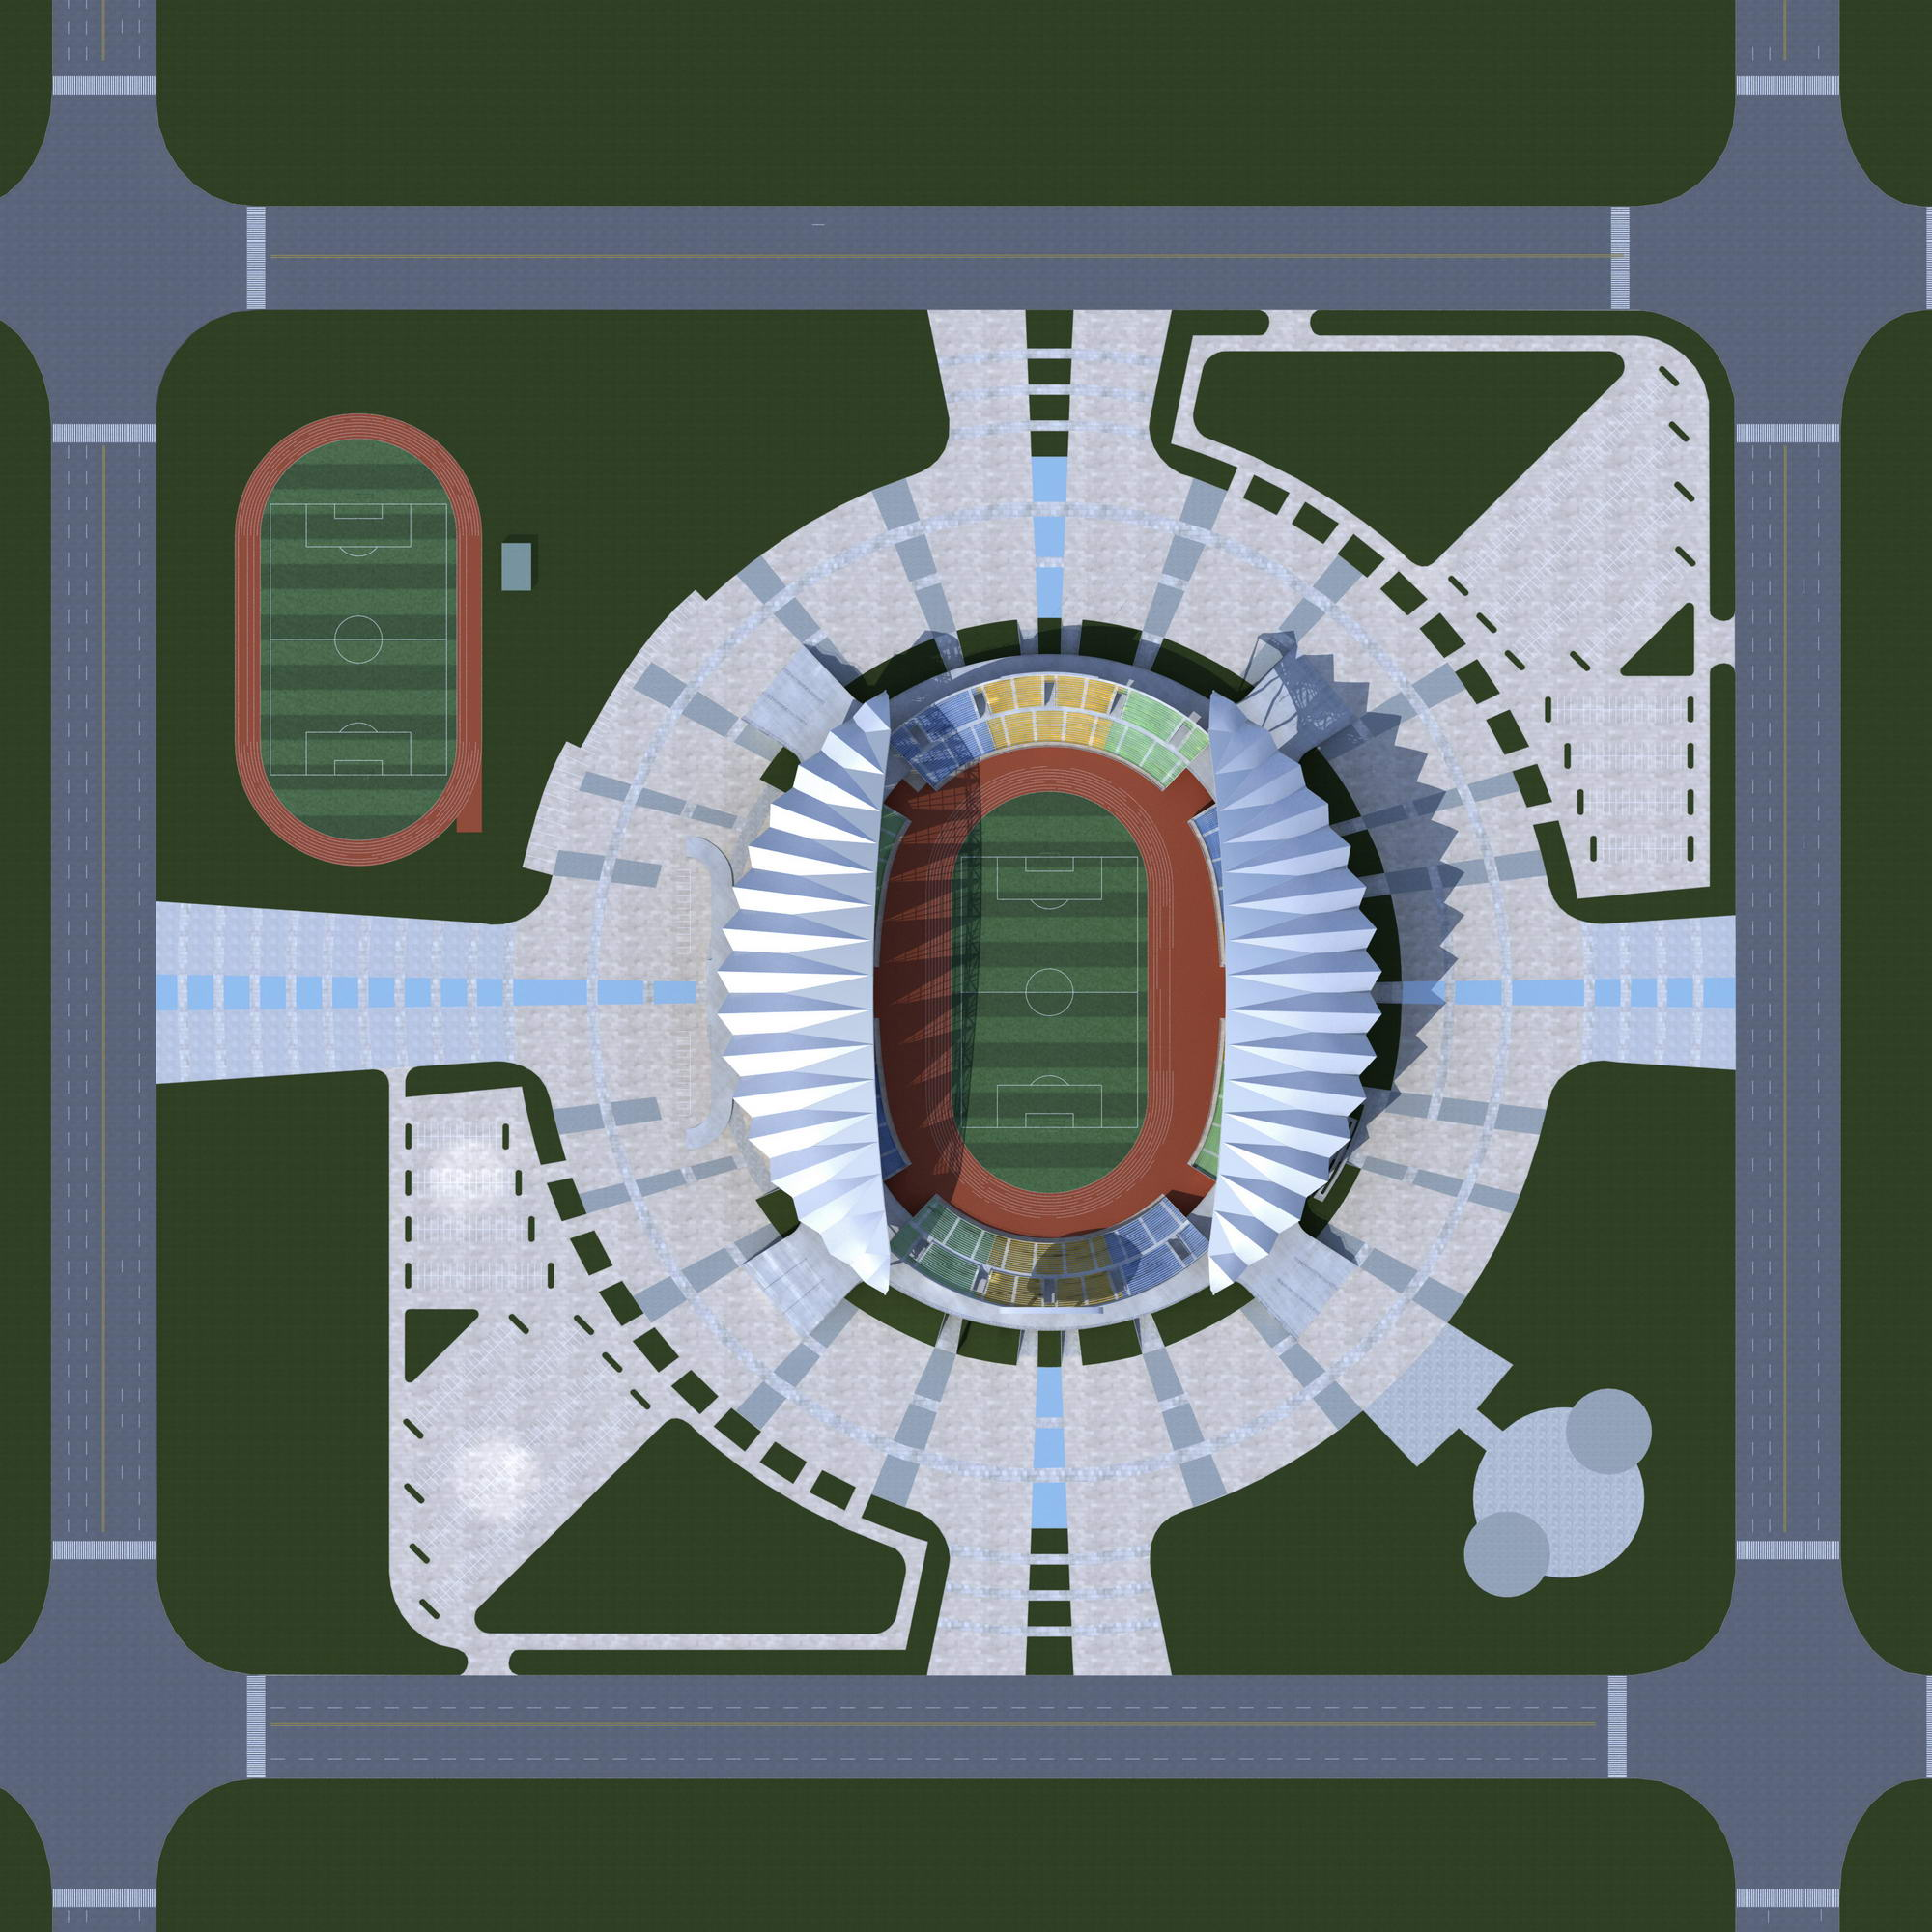 grand stadium 001 3d model 3ds max psd obj 98291